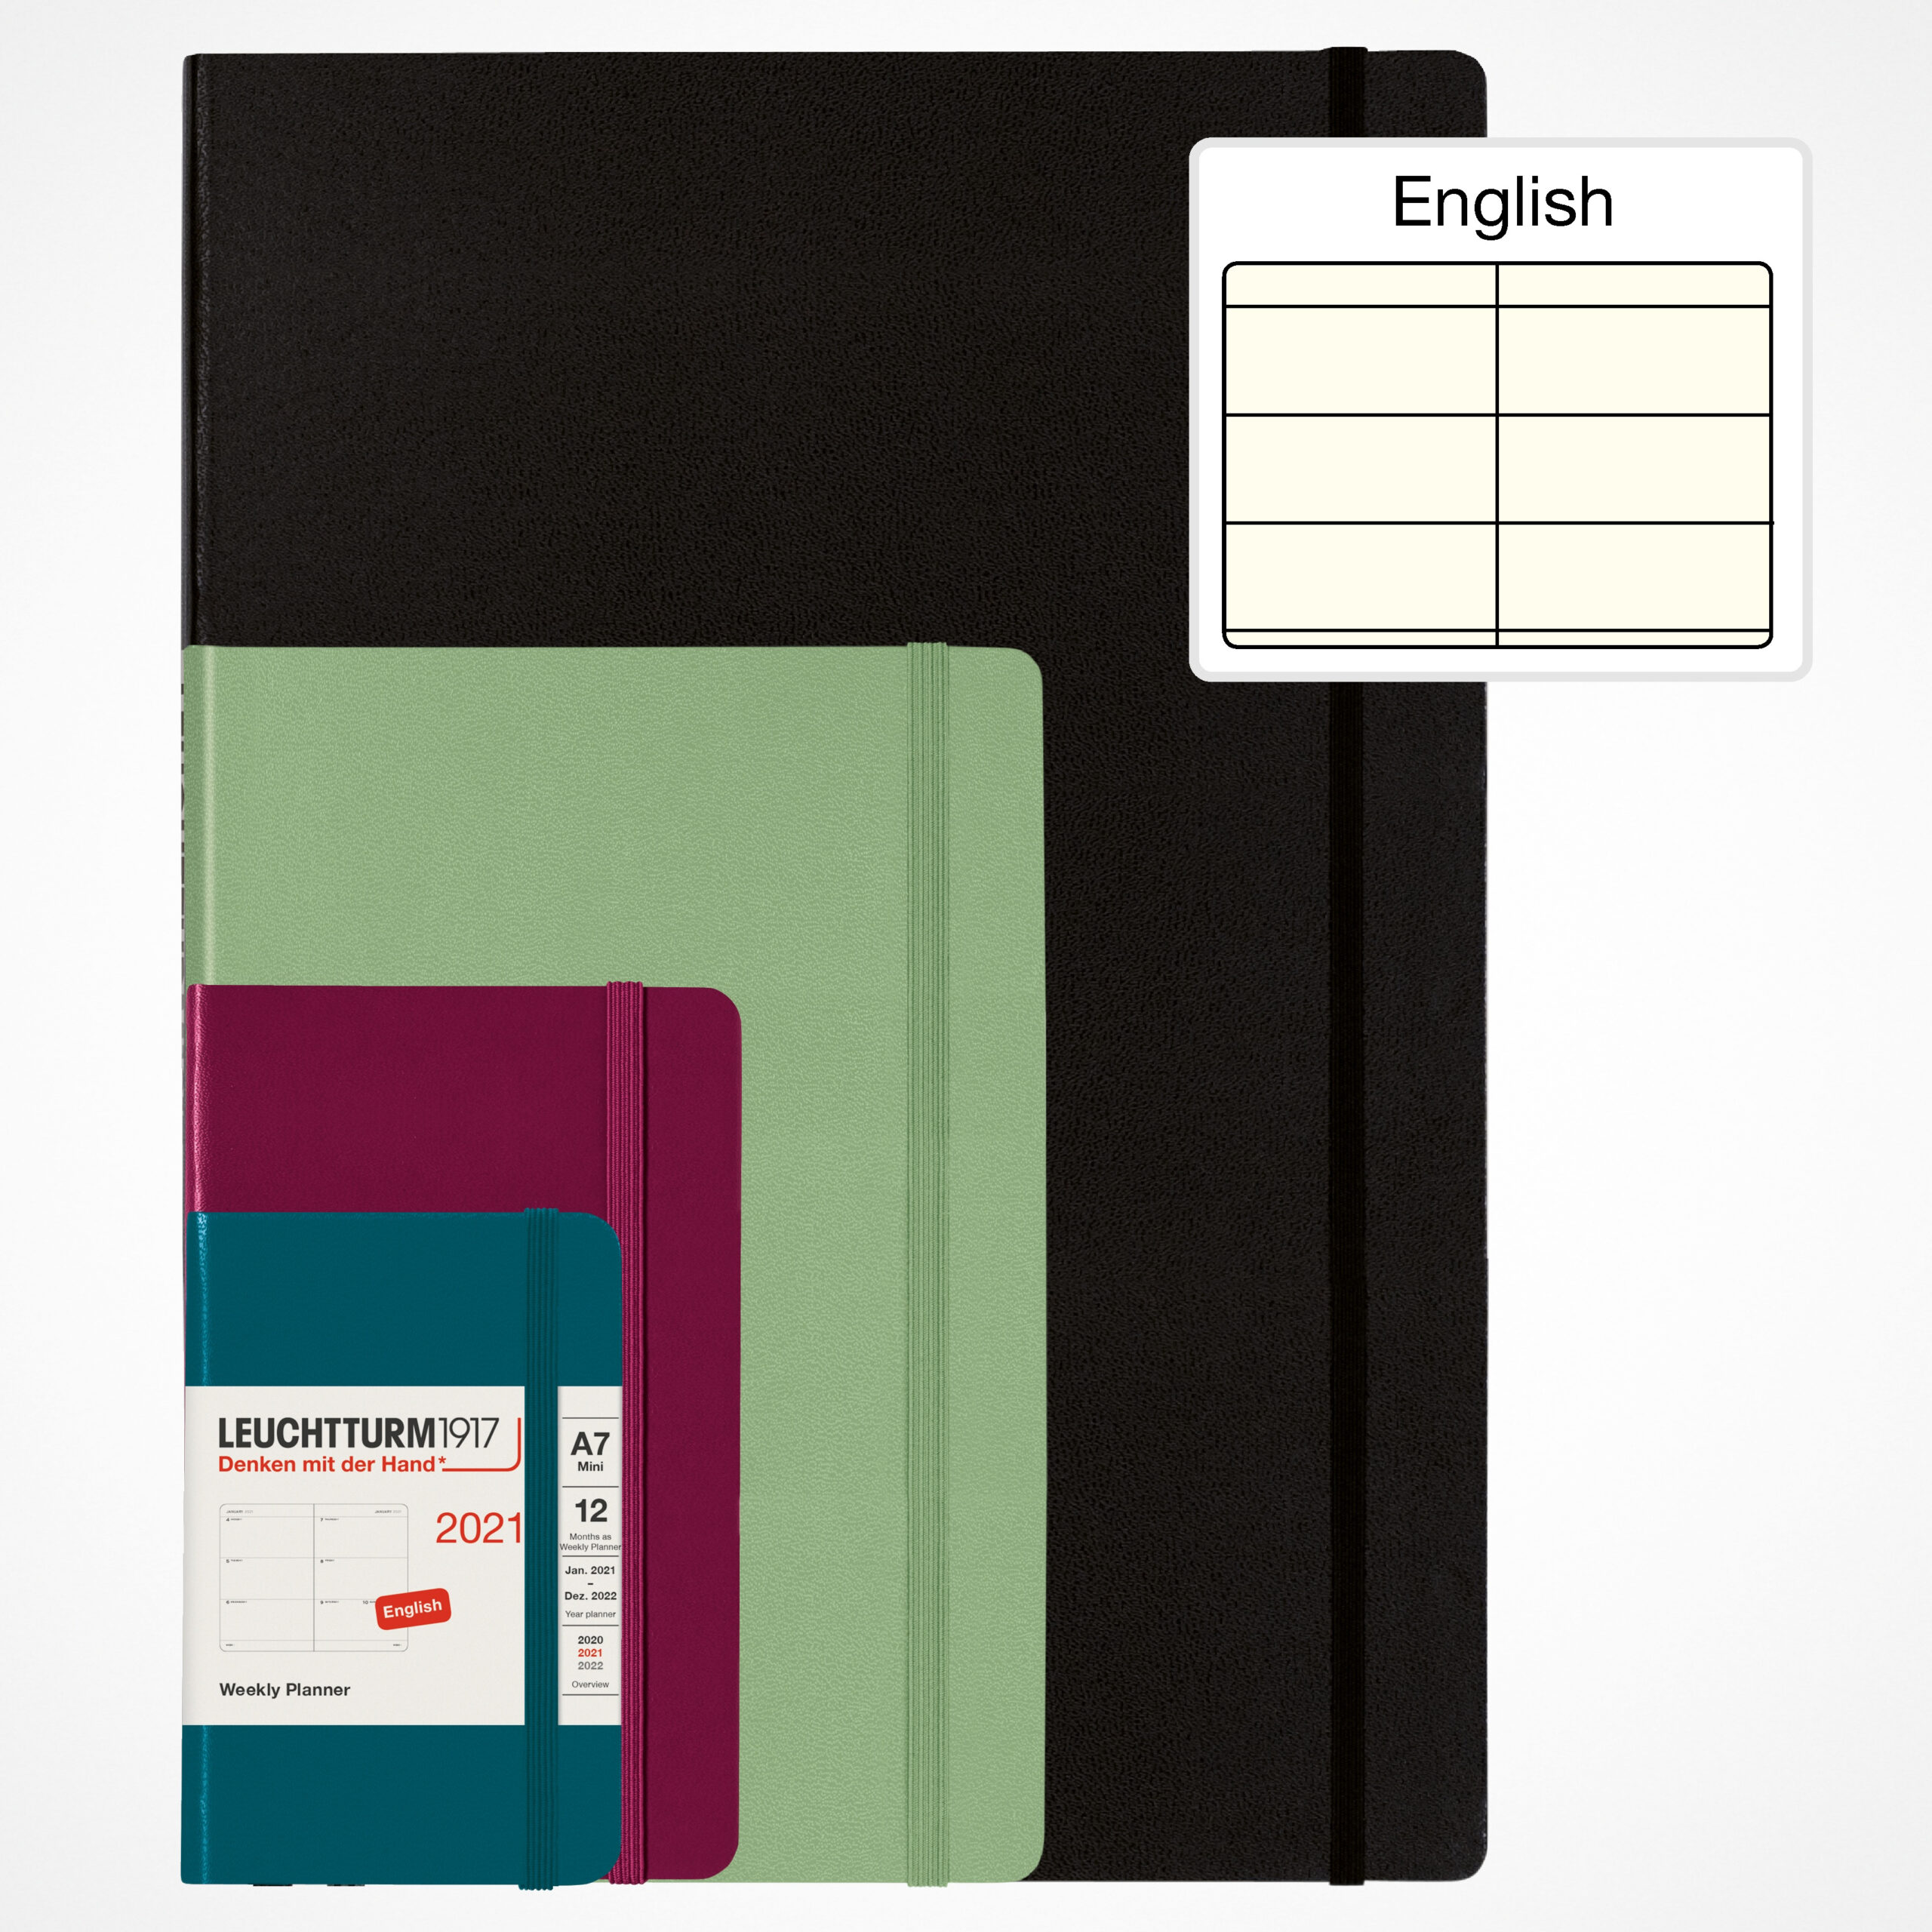 Weekly Planner 2021 With Booklet For Addresses And Birthdays in 2021 Pocket Sized Weekly Planner: